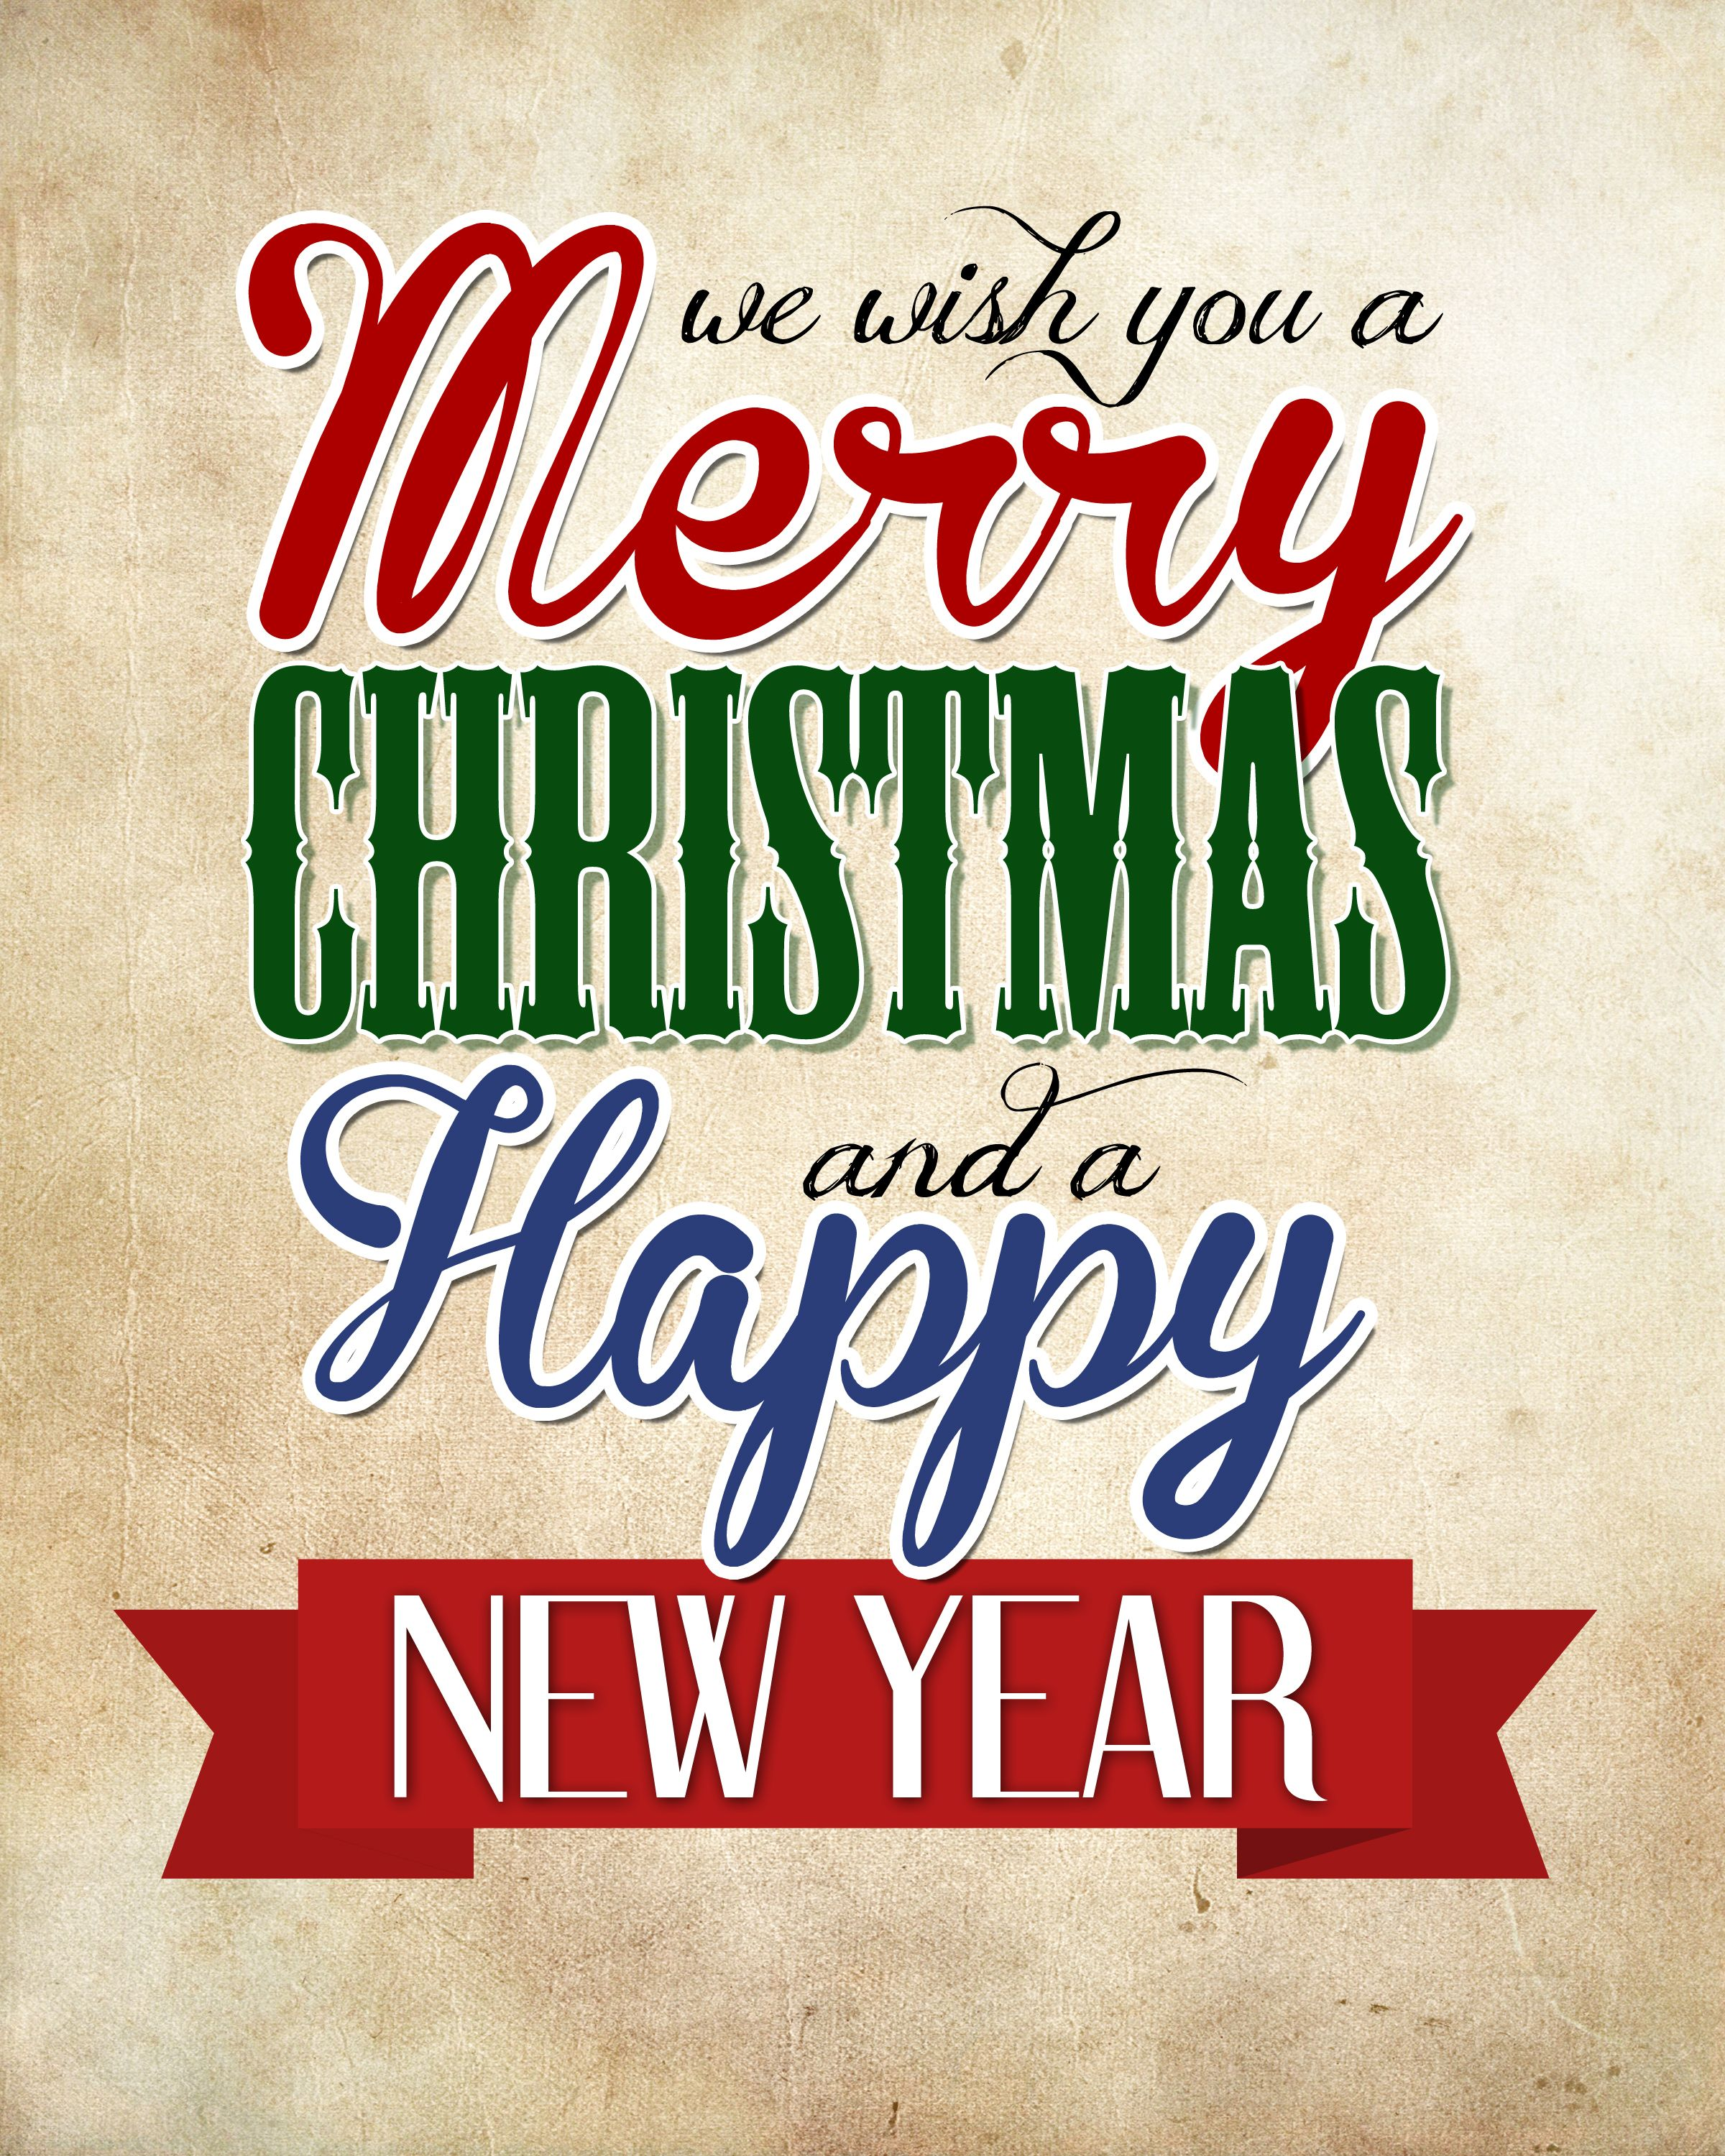 Free Merry Christmas And Happy New Year Printable Merry Christmas Images Free Christmas Printables Happy New Year Cards